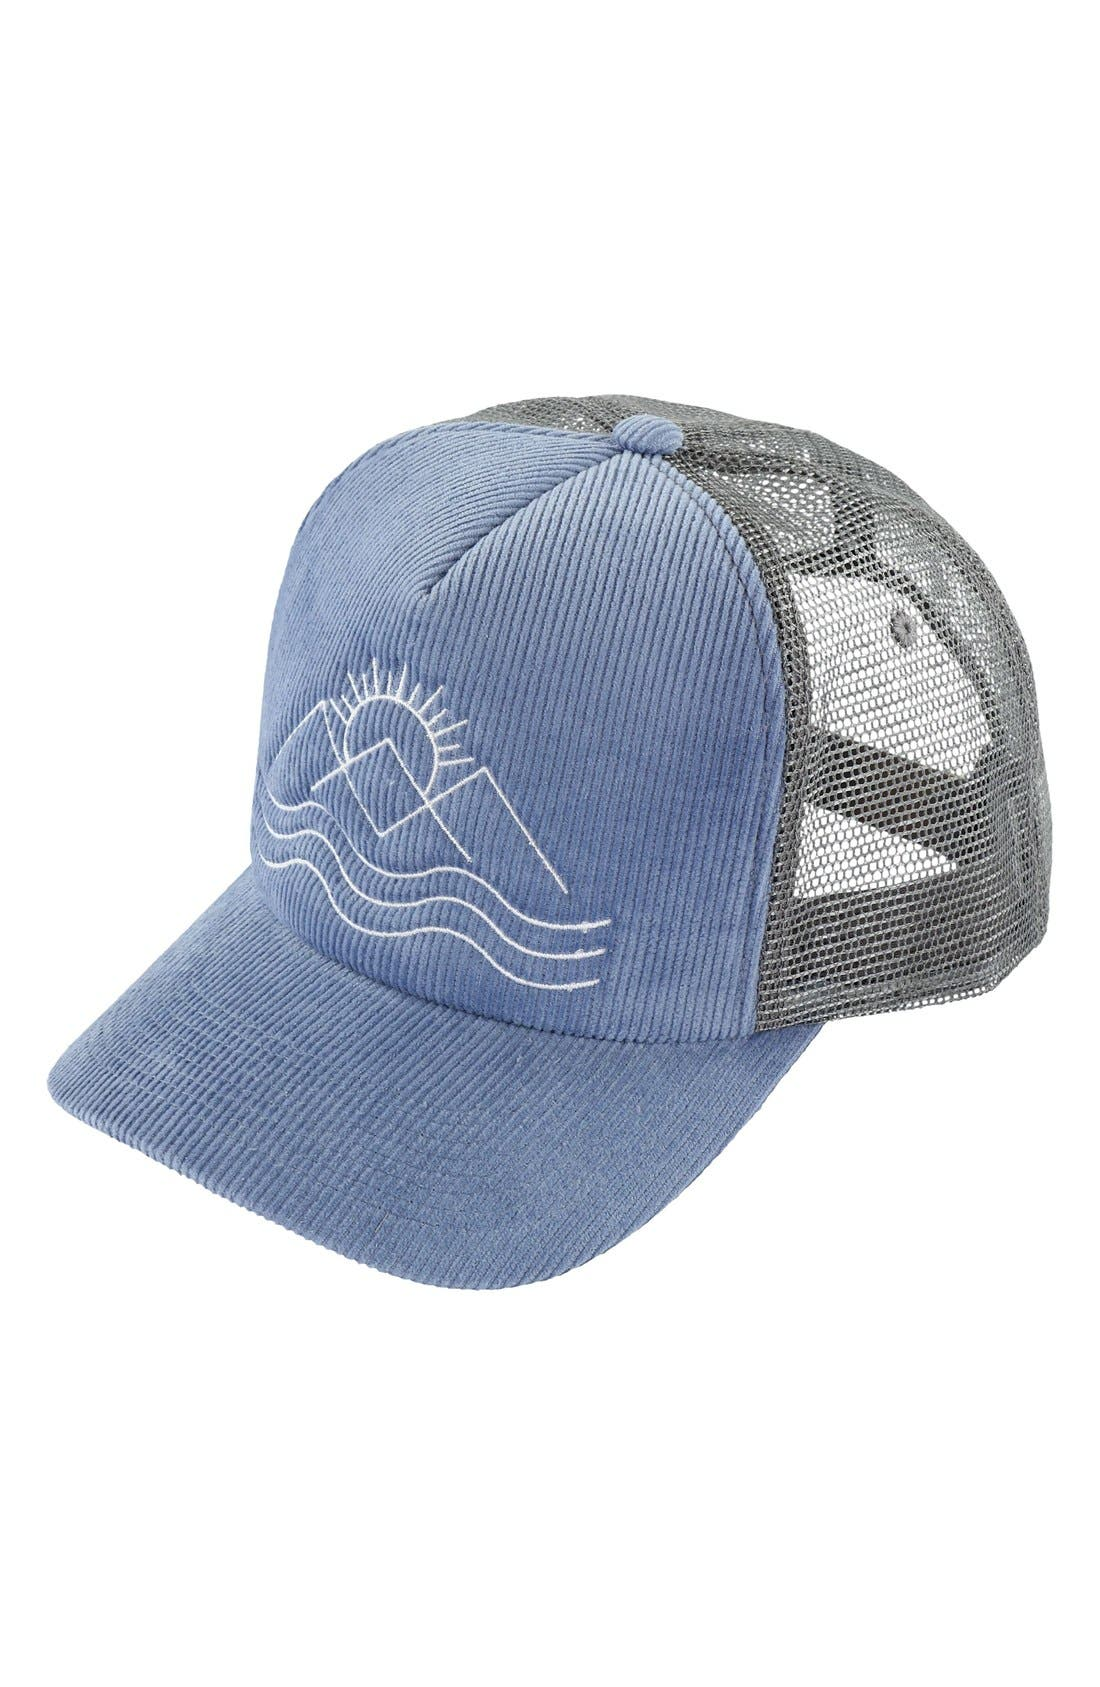 Main Image - O'Neill Outlook Corduroy Trucker Hat